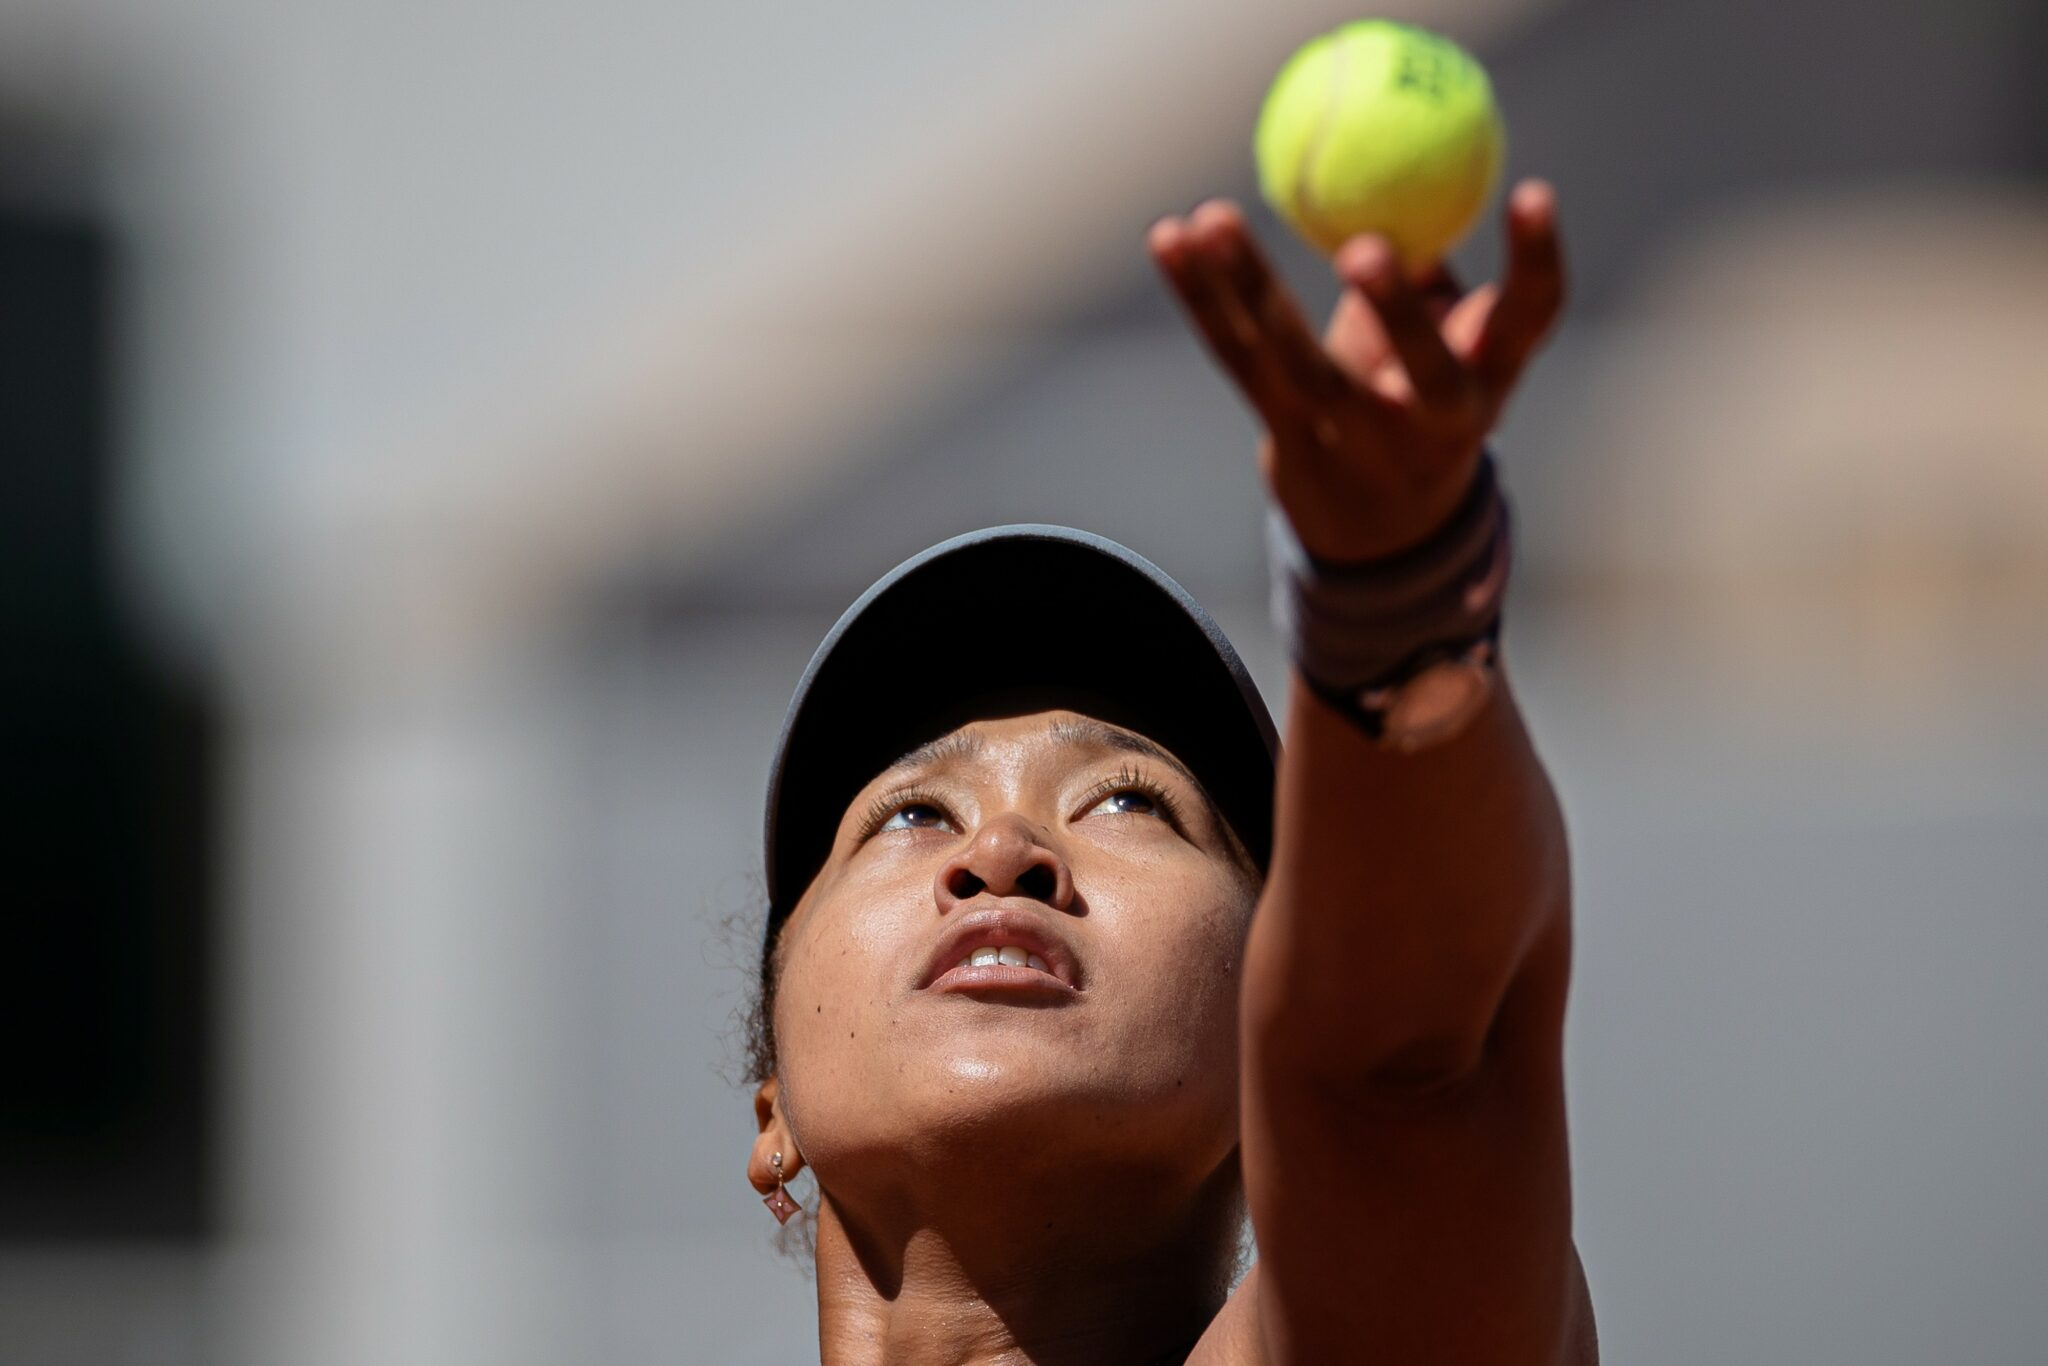 Naomi Osaka's withdrawal from the French Open highlights how prioritizing mental wellness goes against the rules, on the court and off 10